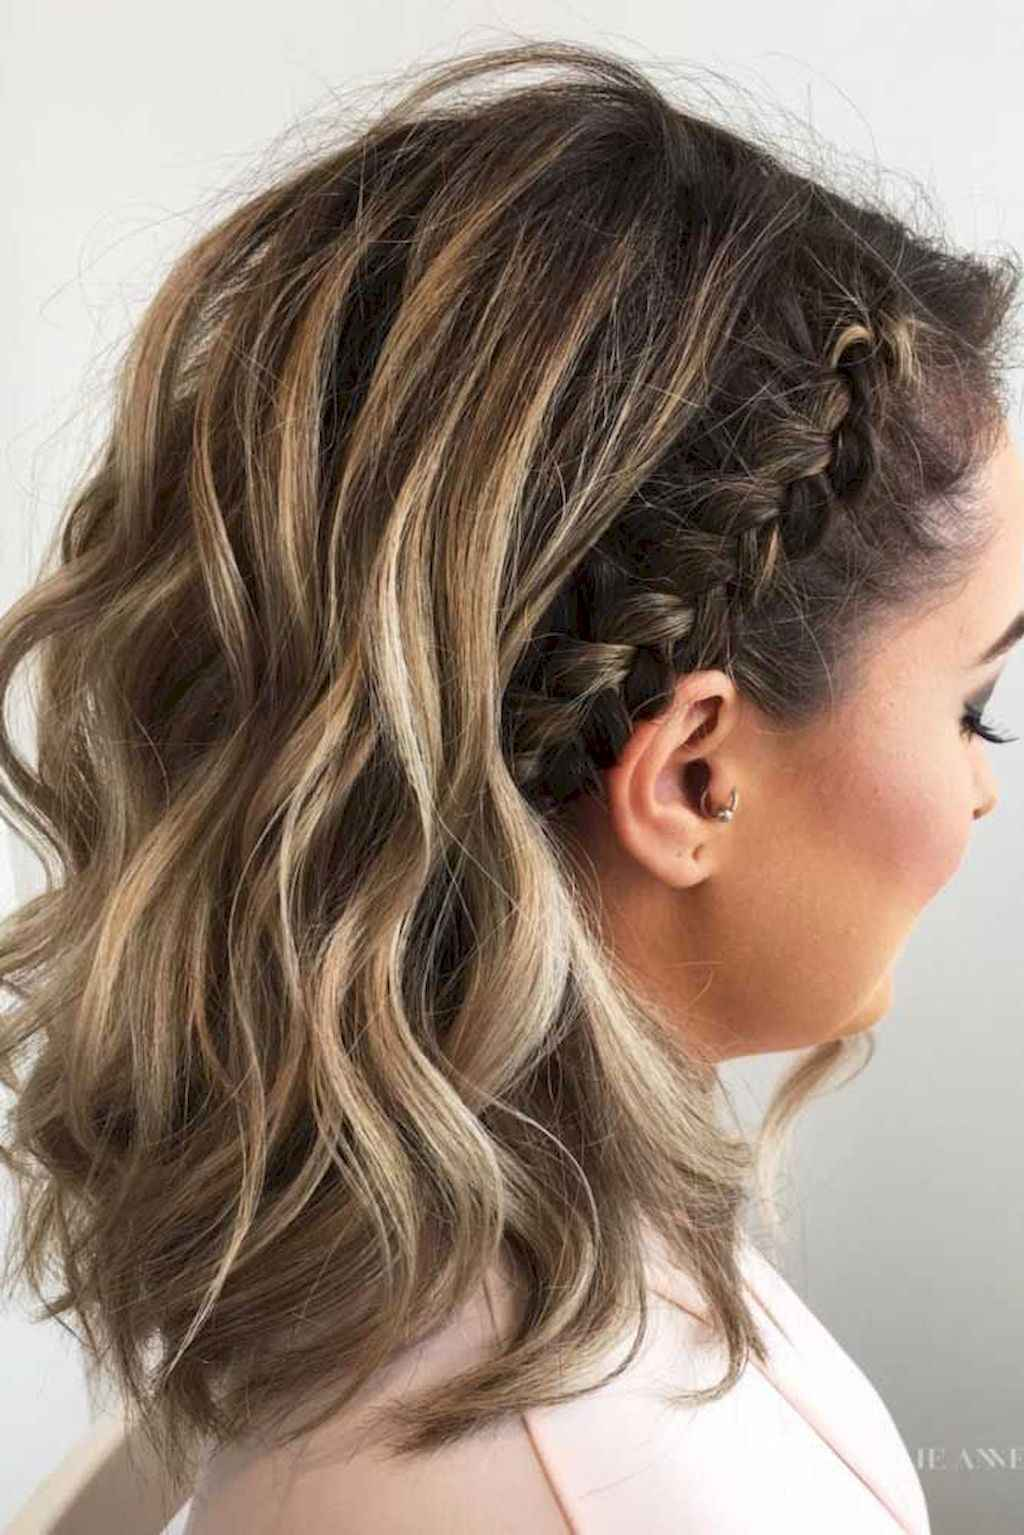 34 Easy Summer Hairstyle To Do Yourself